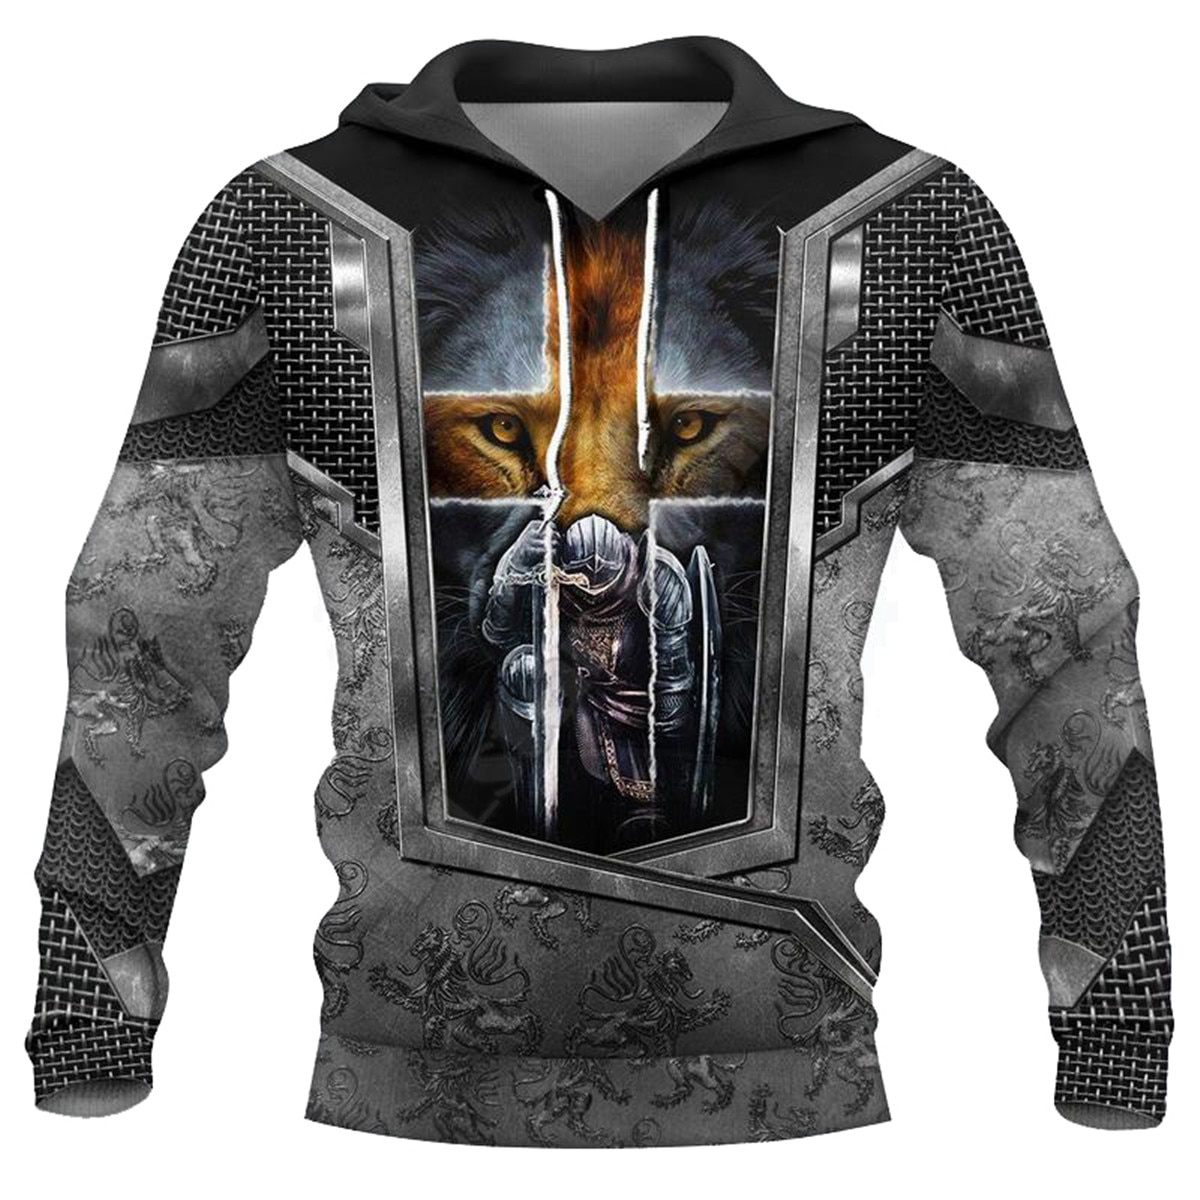 Knight Templar Armor 3D All Over Printed Hoodies Fashion Pullover Men For Women Sweatshirts Sweater Cosplay Costumes 03